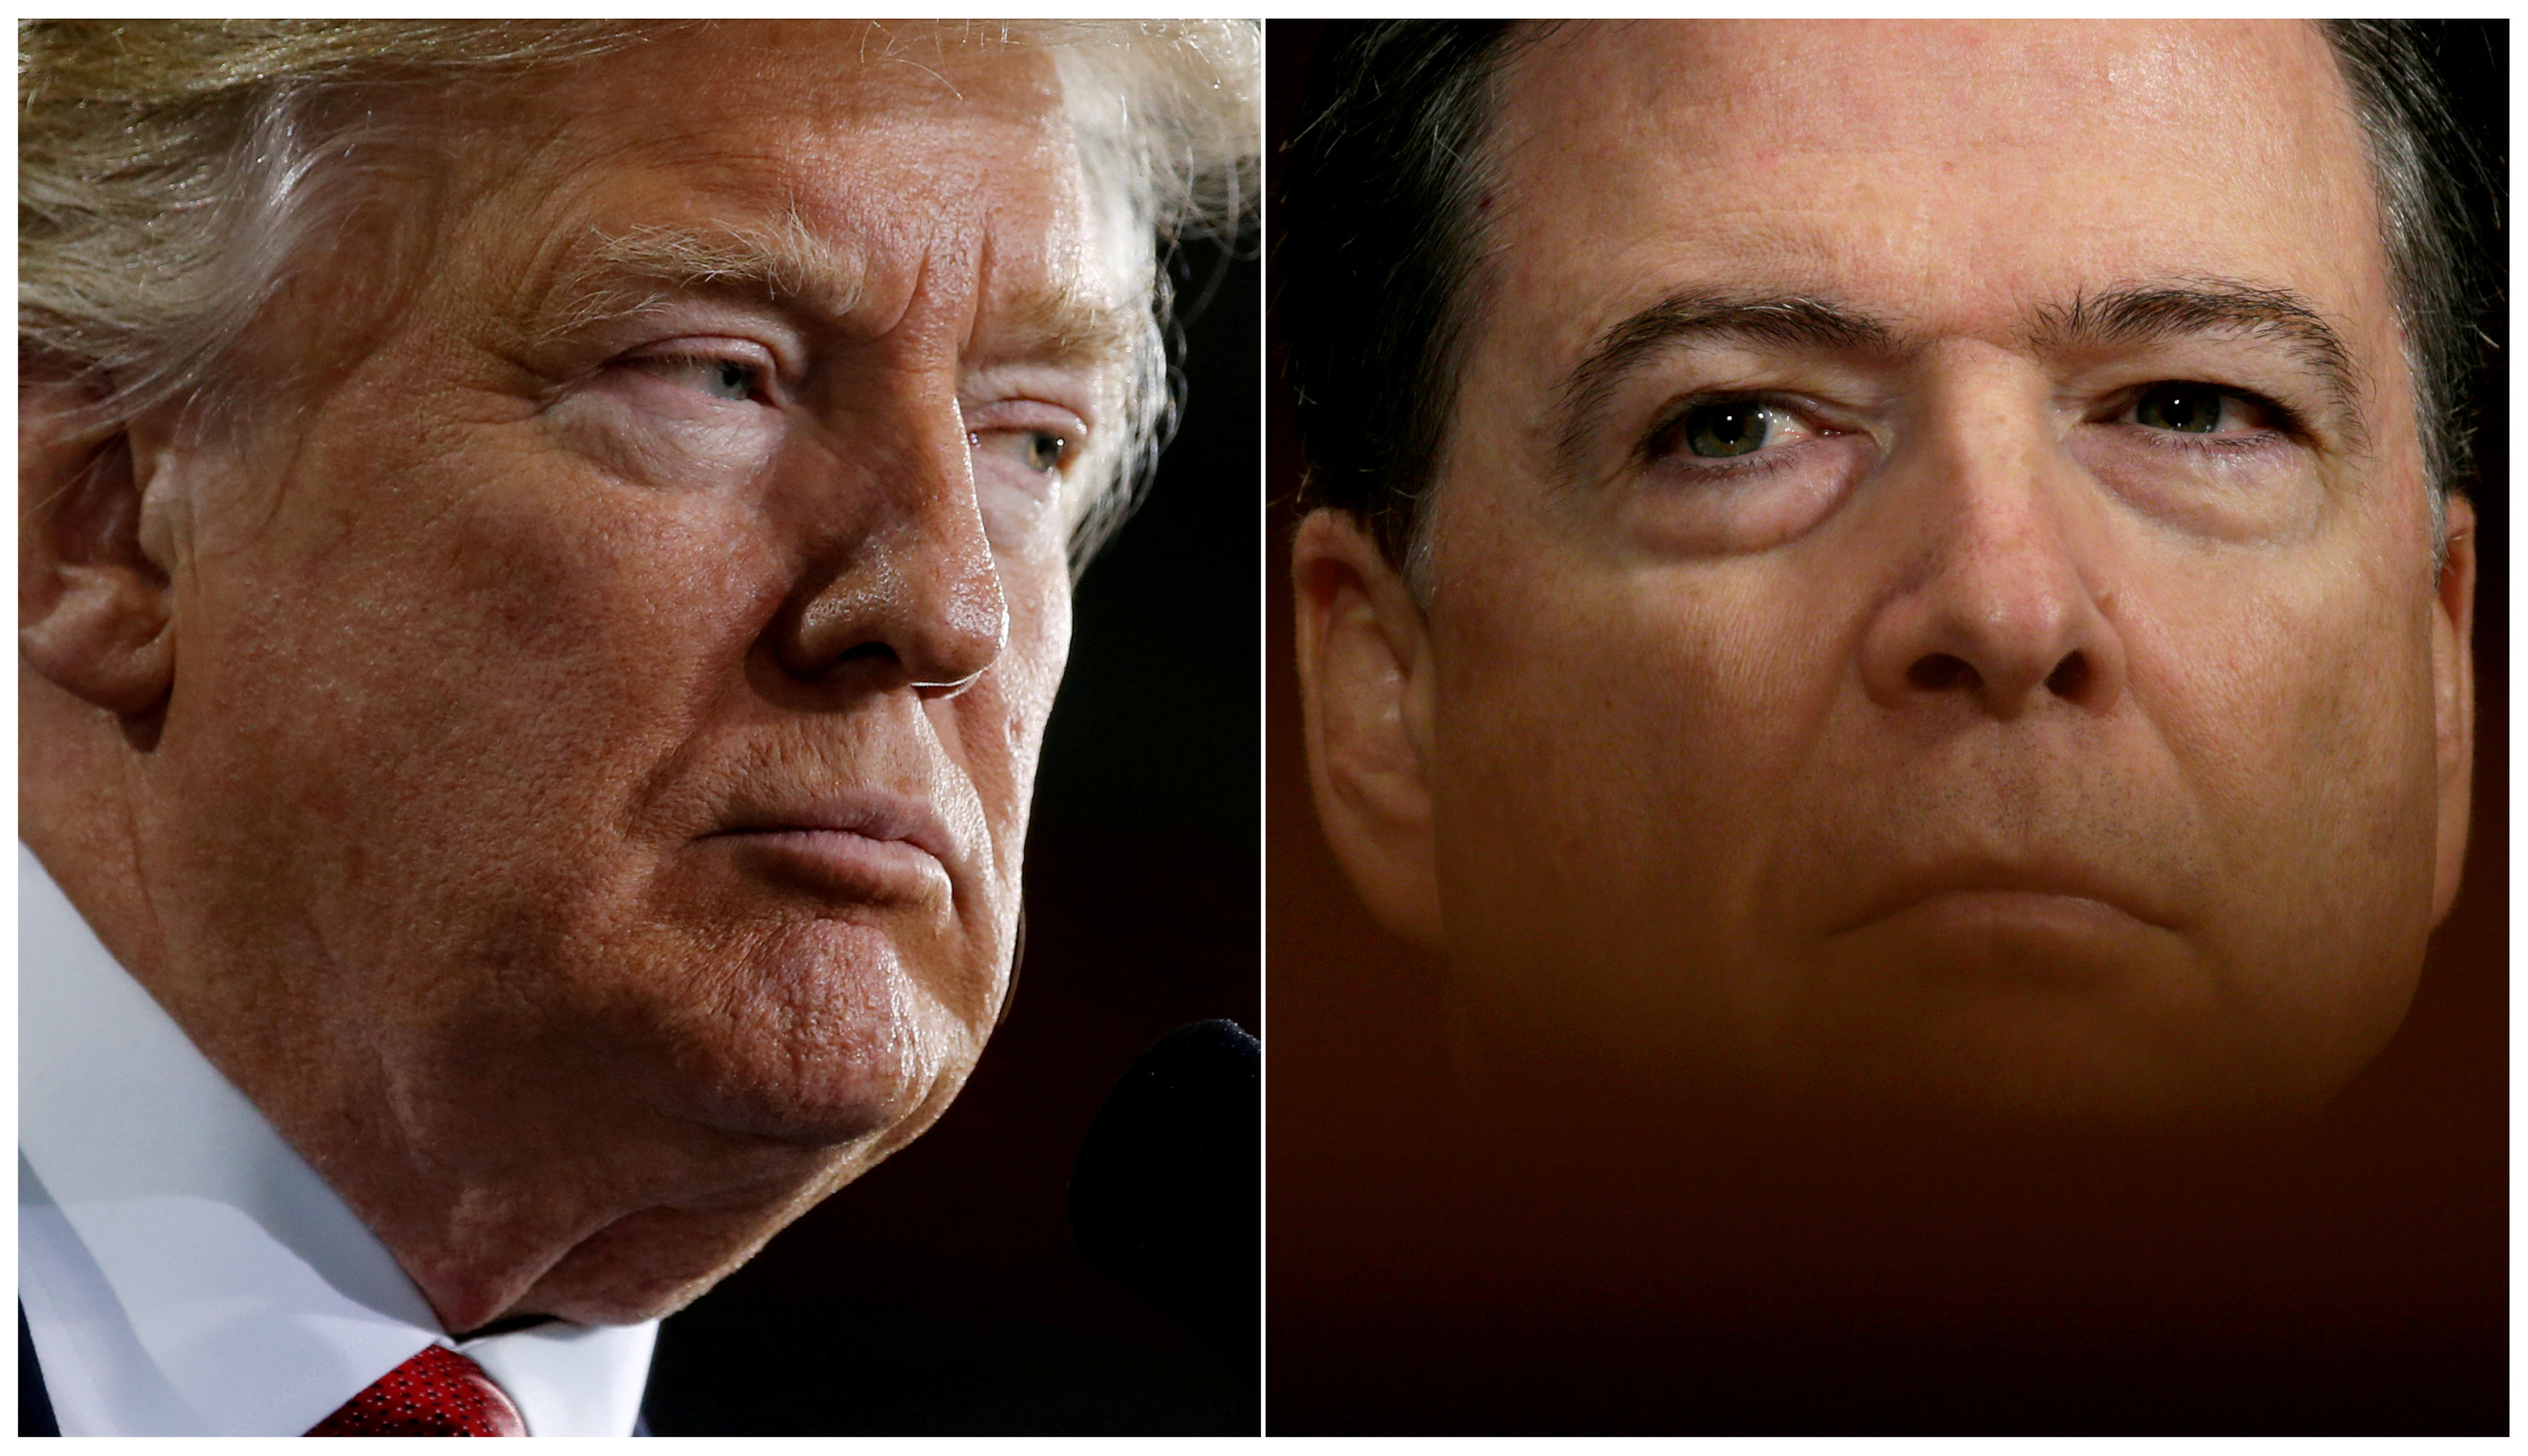 FILE PHOTO: U.S. President Donald Trump (L) speaks in Ypilanti Township, Michigan March 15, 2017 and FBI Director James Comey testifies before a Senate Judiciary Committee hearing in Washington, D.C., May 3, 2017 in a combination of file photos. REUTERS/Jonathan Ernst/Kevin Lamarque/File Photo